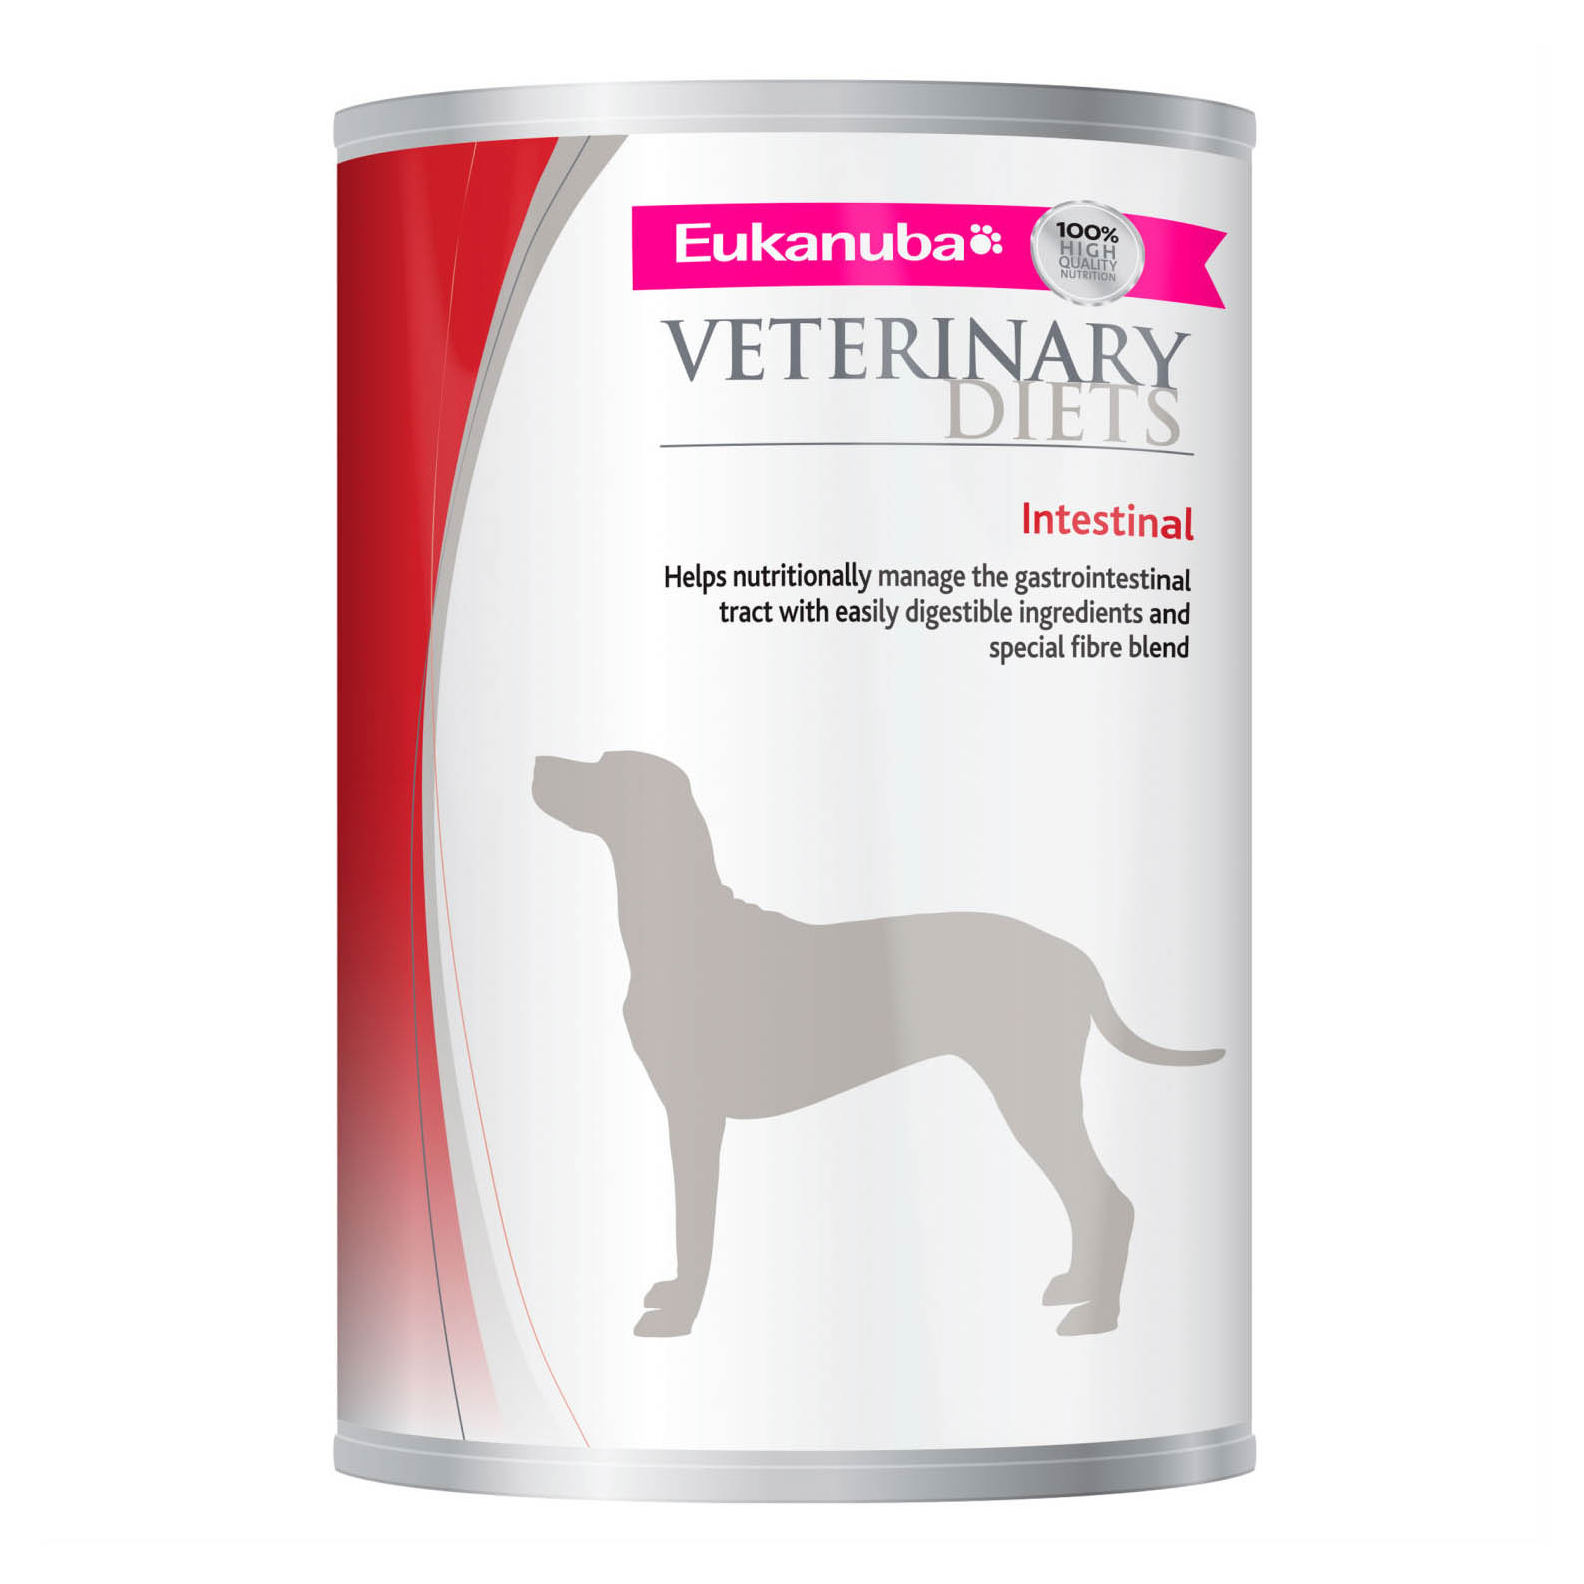 Eukanuba Veterinary Diets Intestinal Dog Food Wet 12x400g Can on Animed Direct